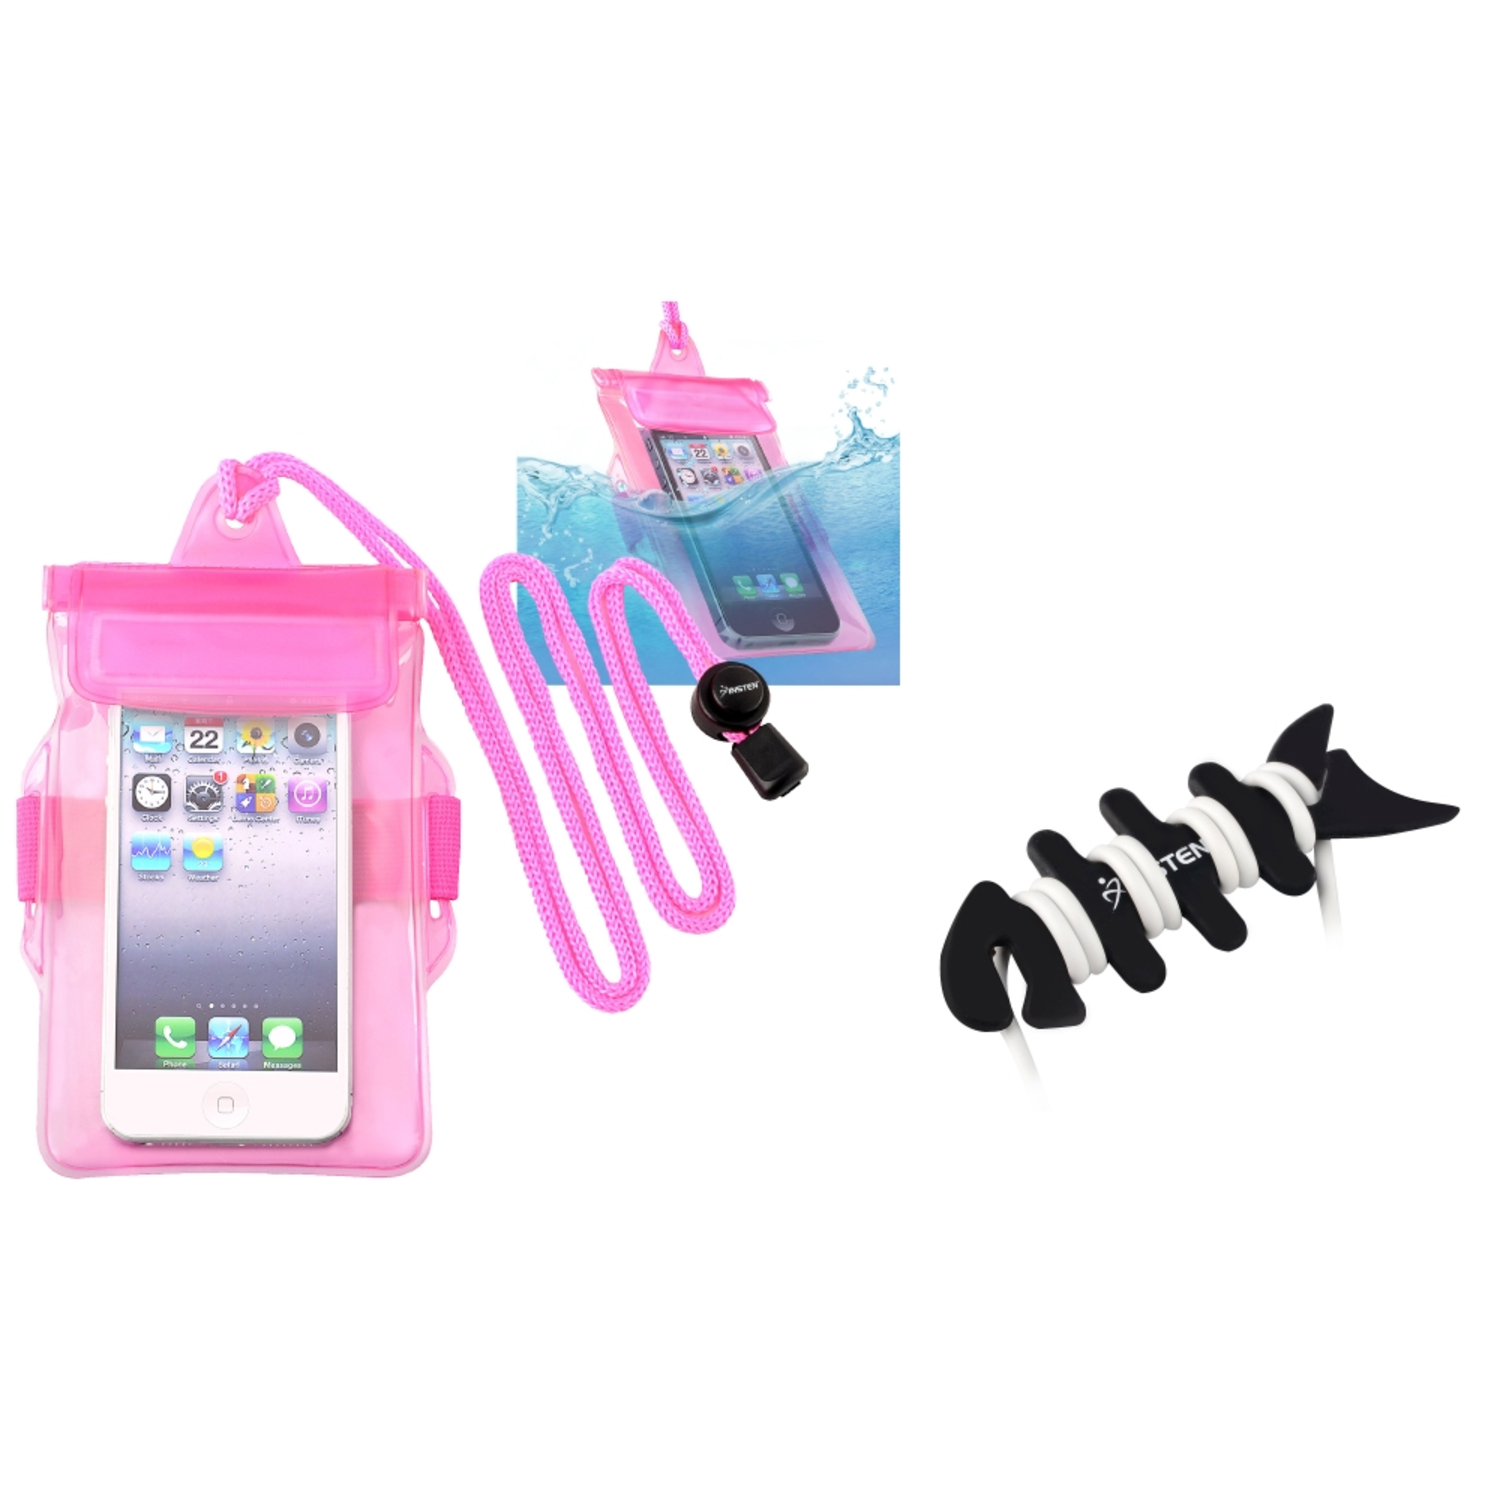 Insten Sport Waterproof Bag Case Pink+Fishbone Wrap For Apple iPhone 5 5G 5th 4 4S 4GS Gen Samsung i9190 Galaxy S4 Mini